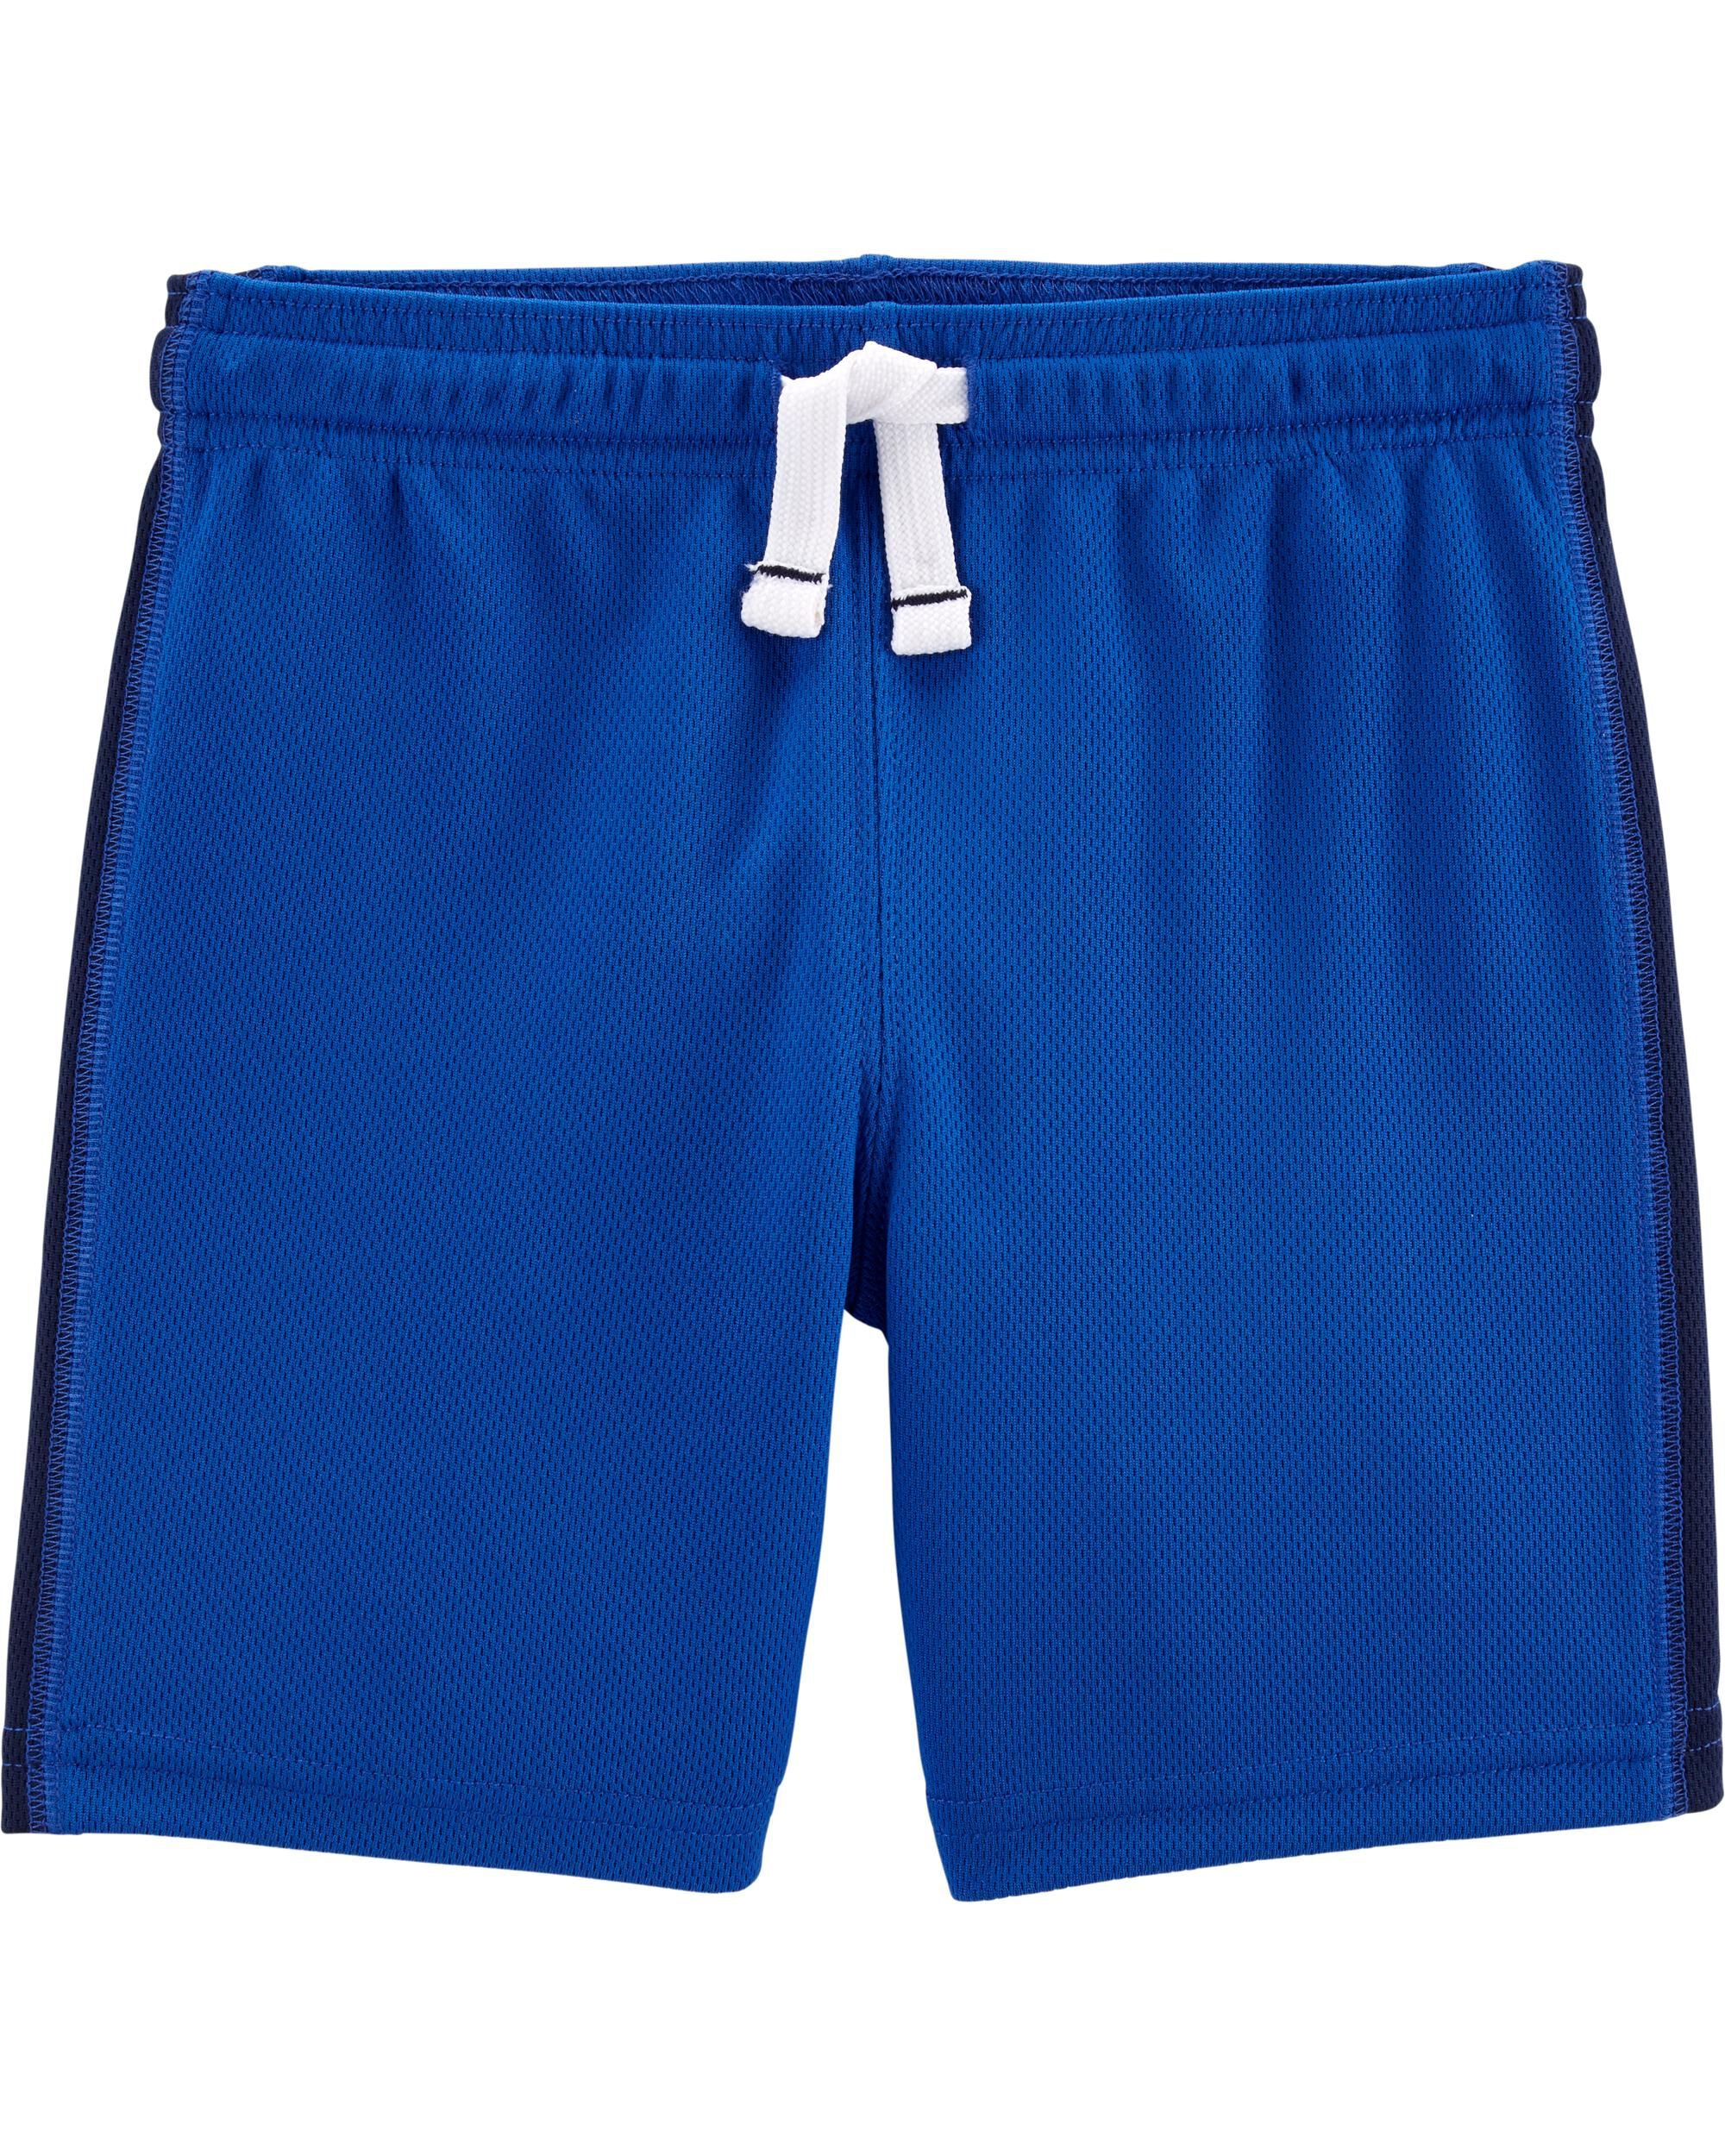 *Clearance*  Active Mesh Shorts